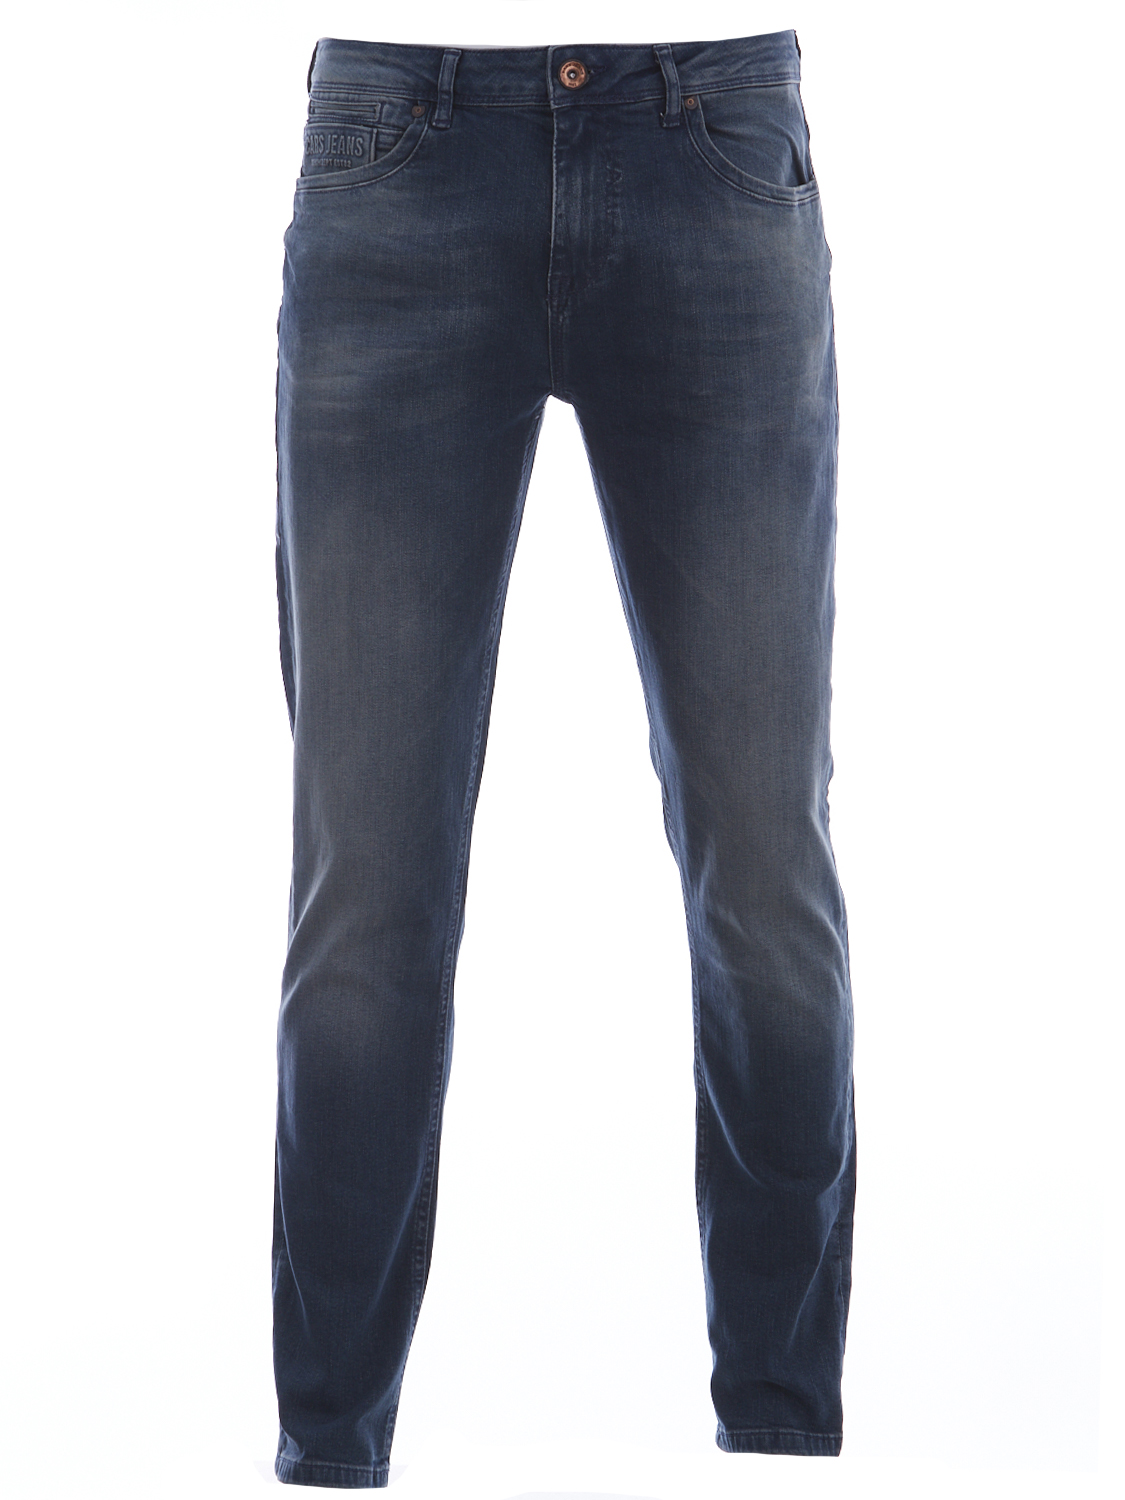 Cars Jeans Cars Jeans BLAST Slim Fit LION BLUE